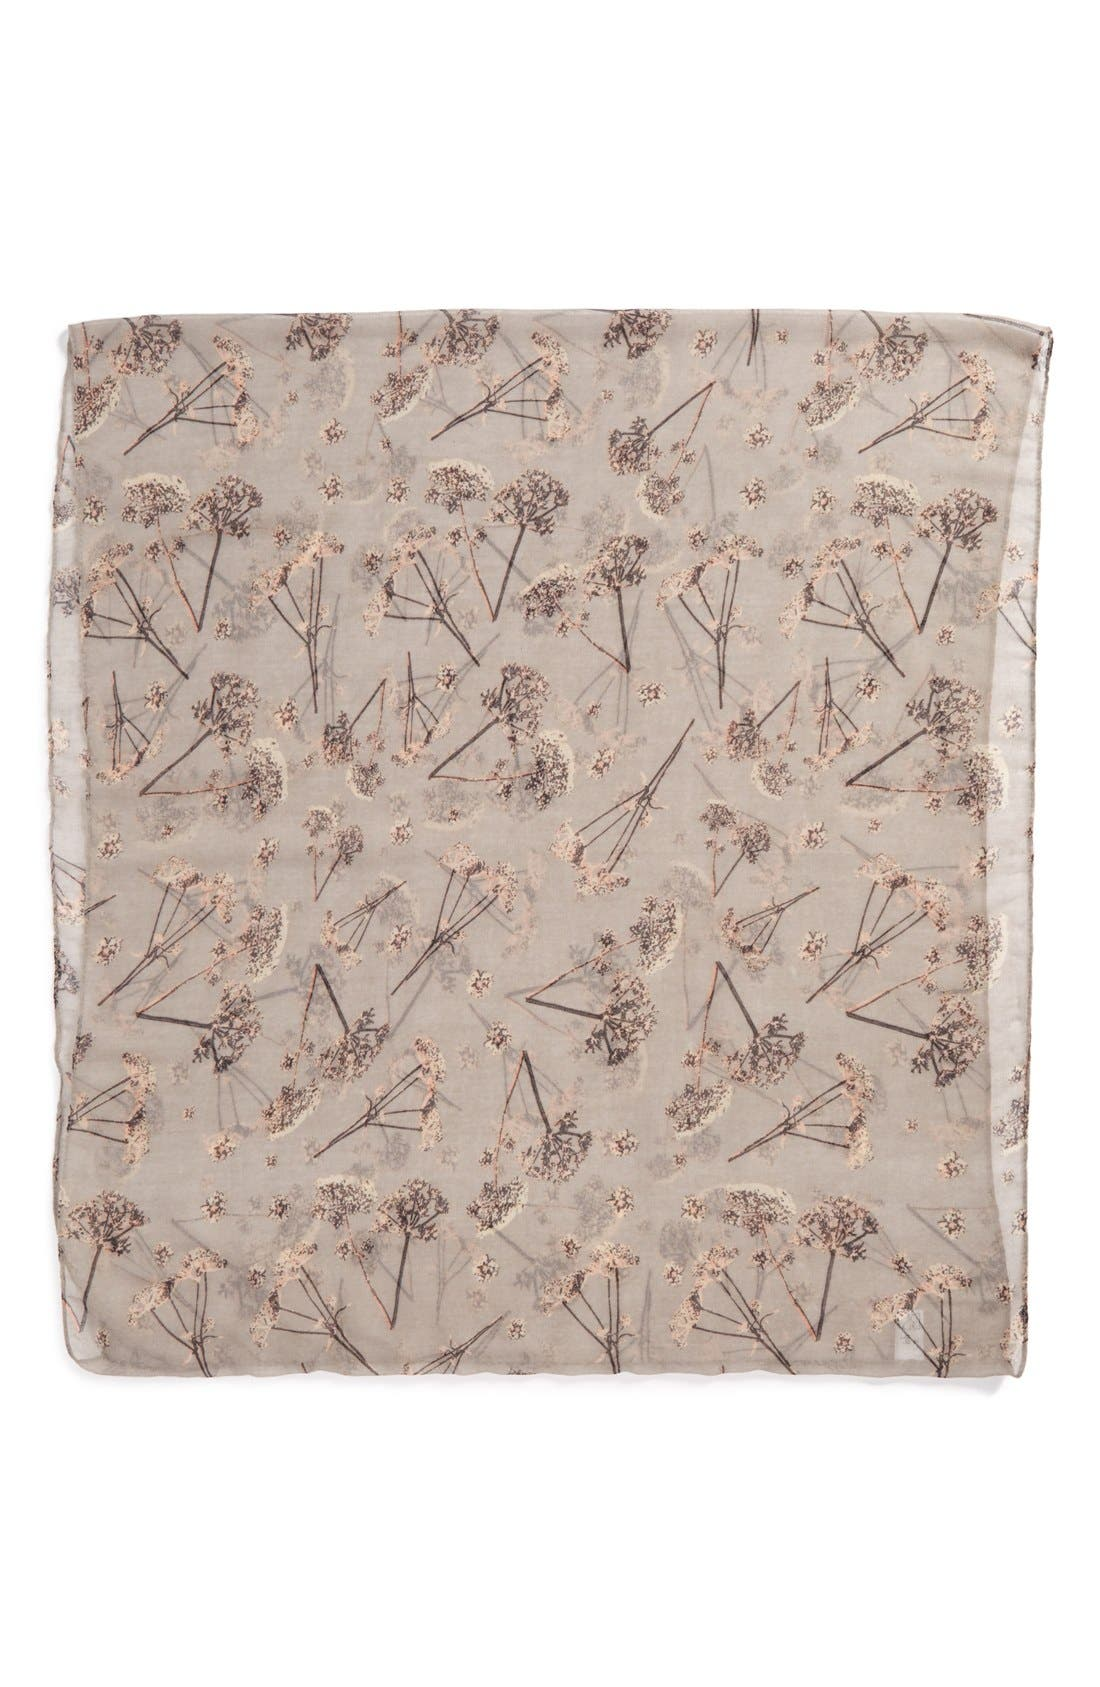 Dandelion Print Infinity Scarf,                             Alternate thumbnail 2, color,                             Grey